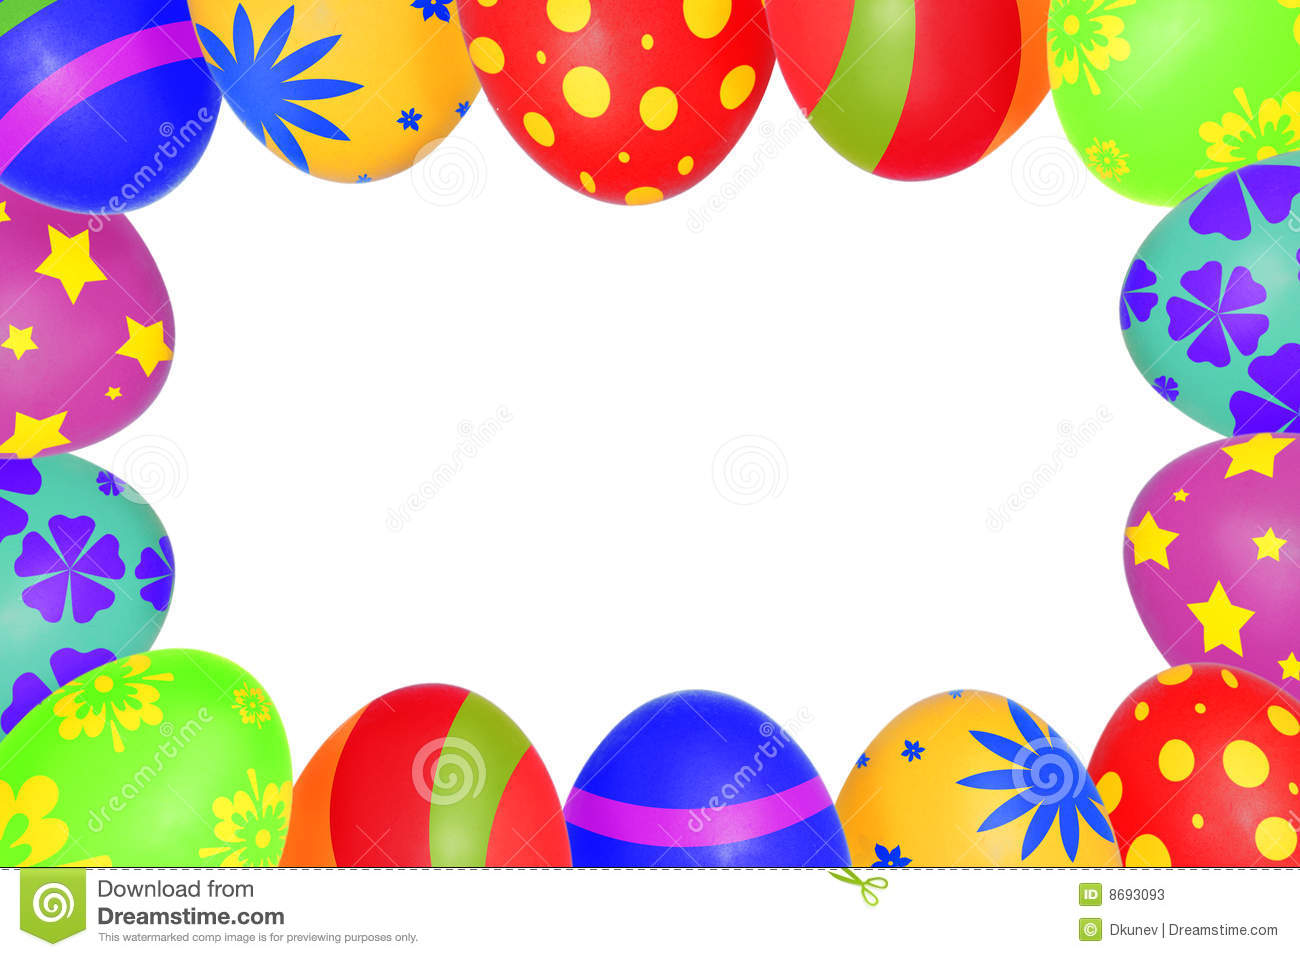 Easter egg frame clipart png graphic library download Easter Eggs Frame Stock Photos - Image: 8693093 graphic library download